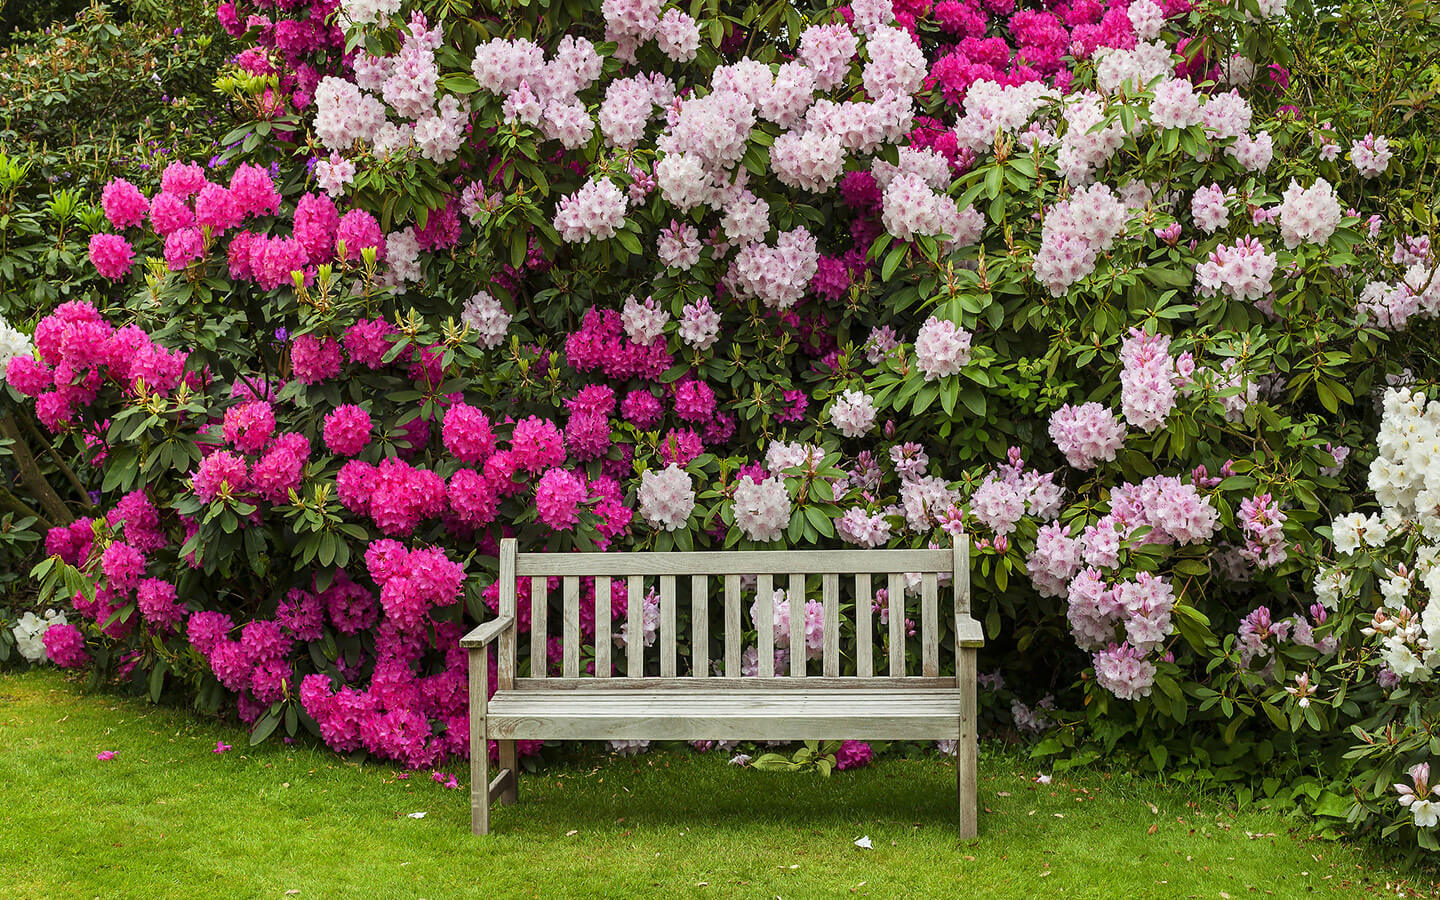 Bench in front of flowers in a garden in Lancaster County PA